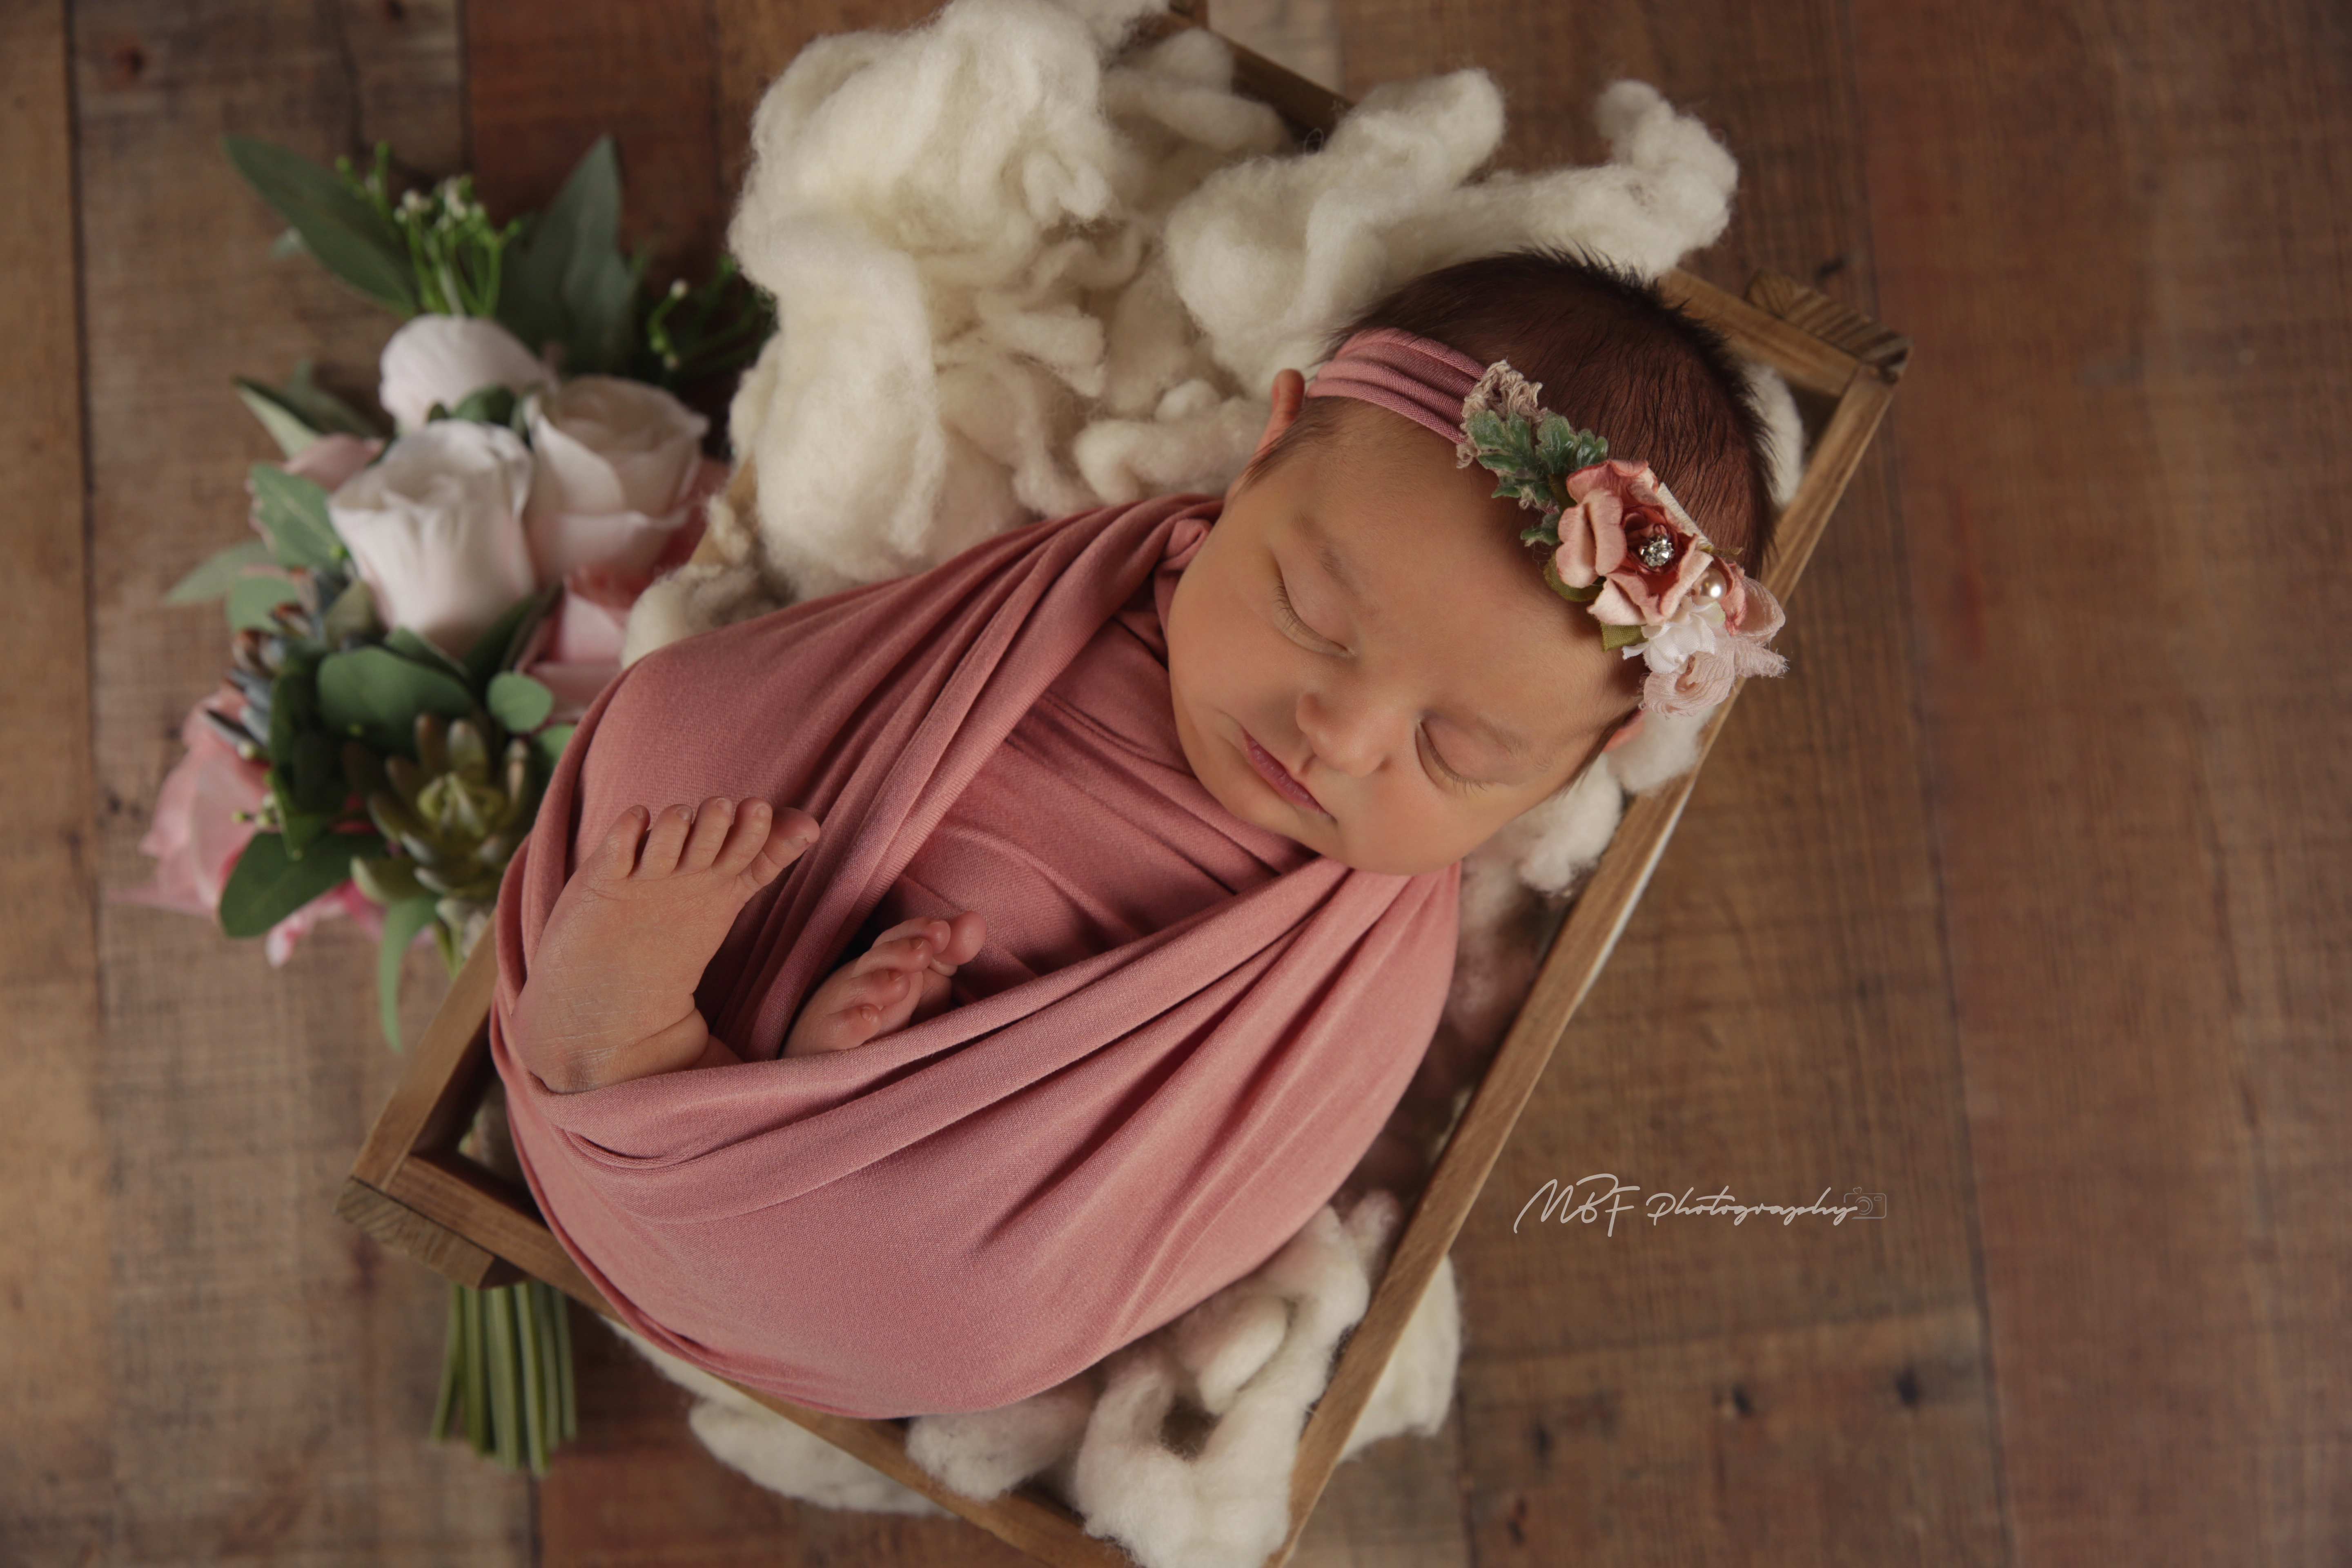 Newborn photographer Las Vegas, MBF Photography, Newborn session